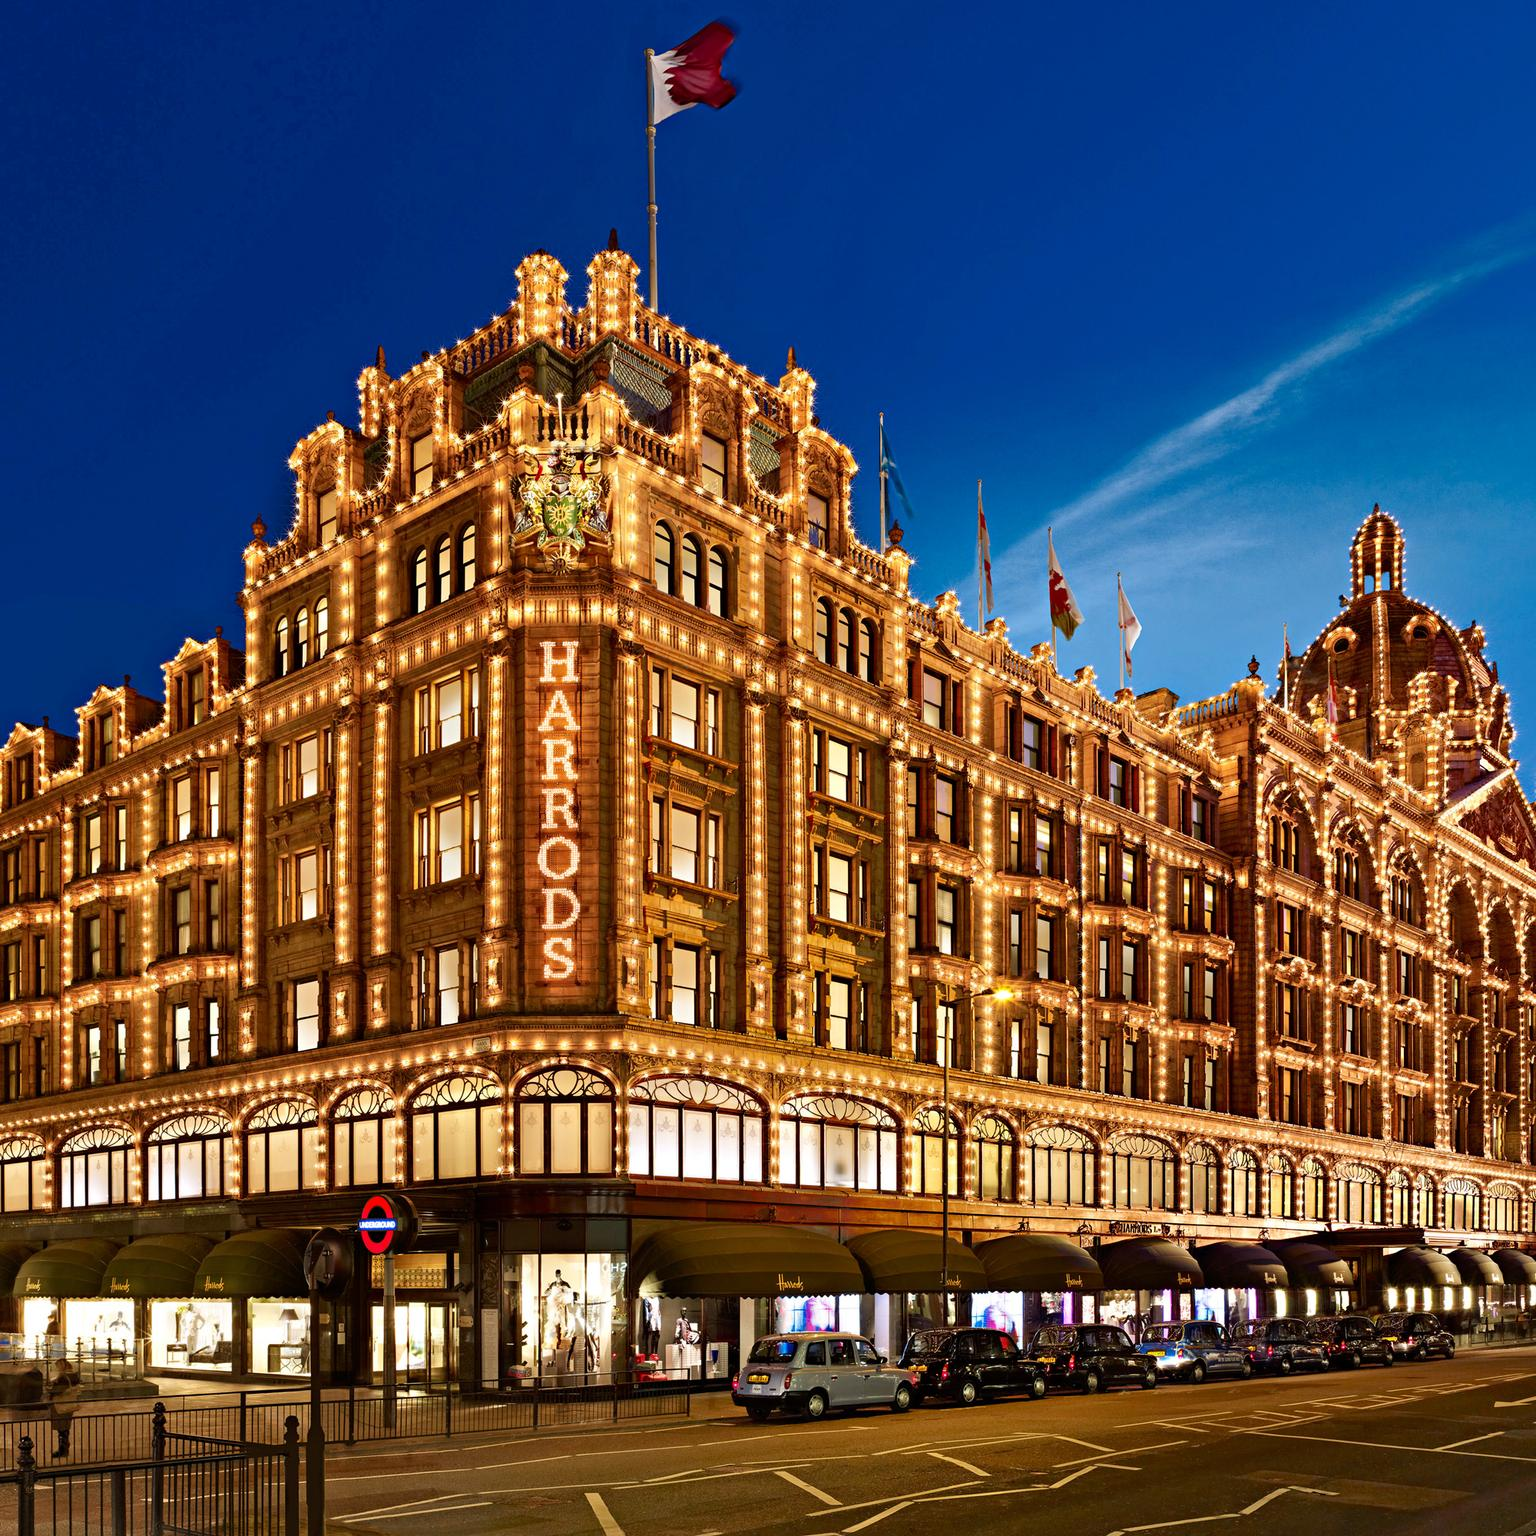 Exterior of Harrods department store at night